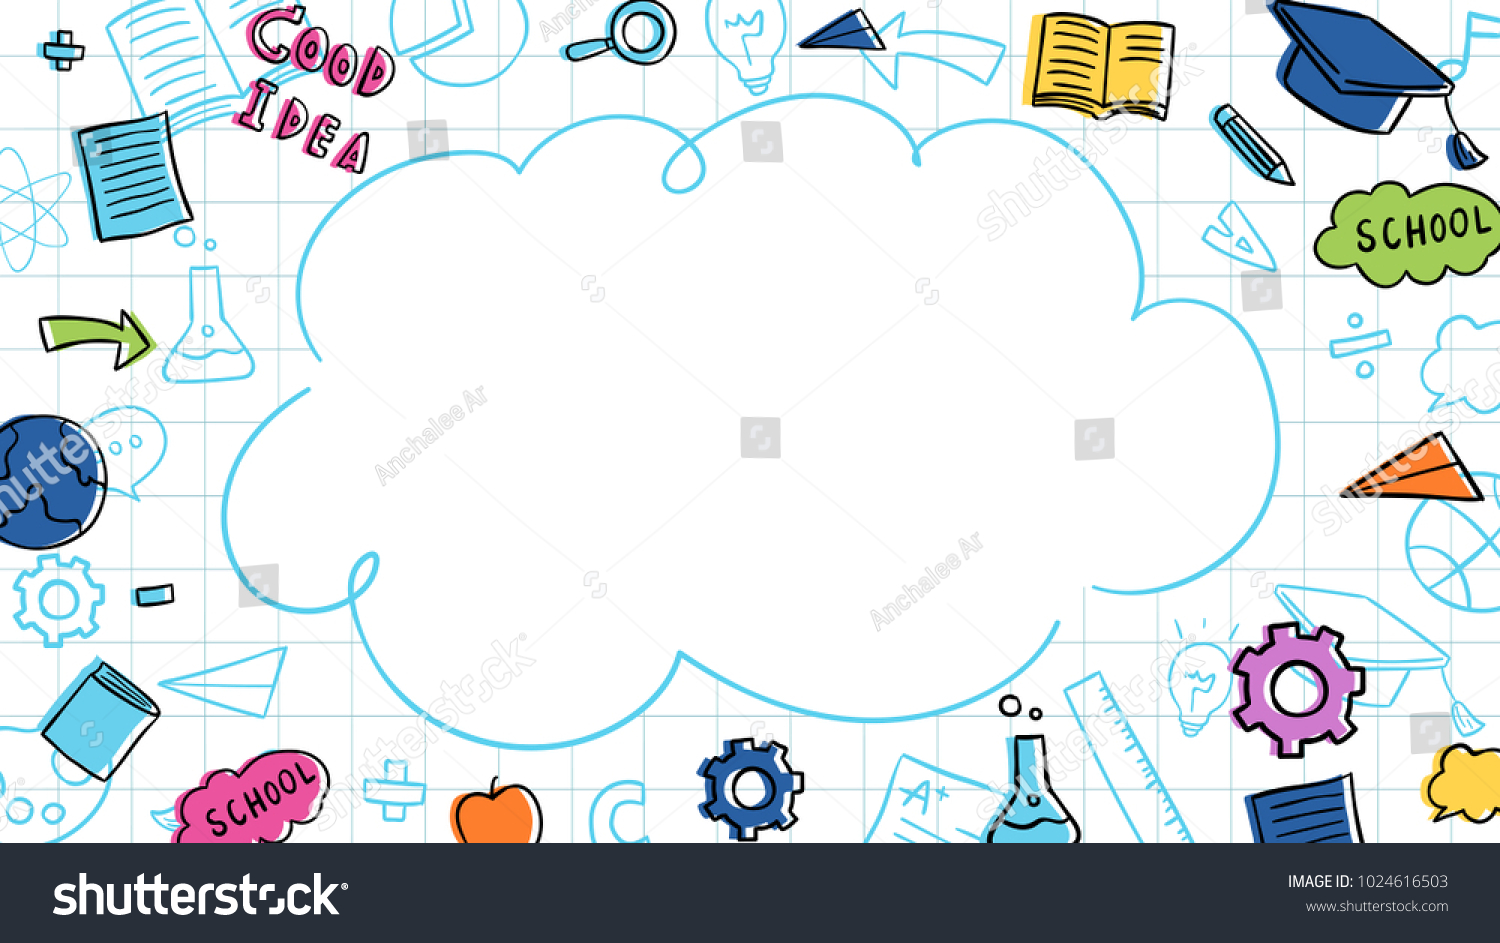 Vector Illustration Banner Background Design Colorful Stock Vector Royalty Free 1024616503